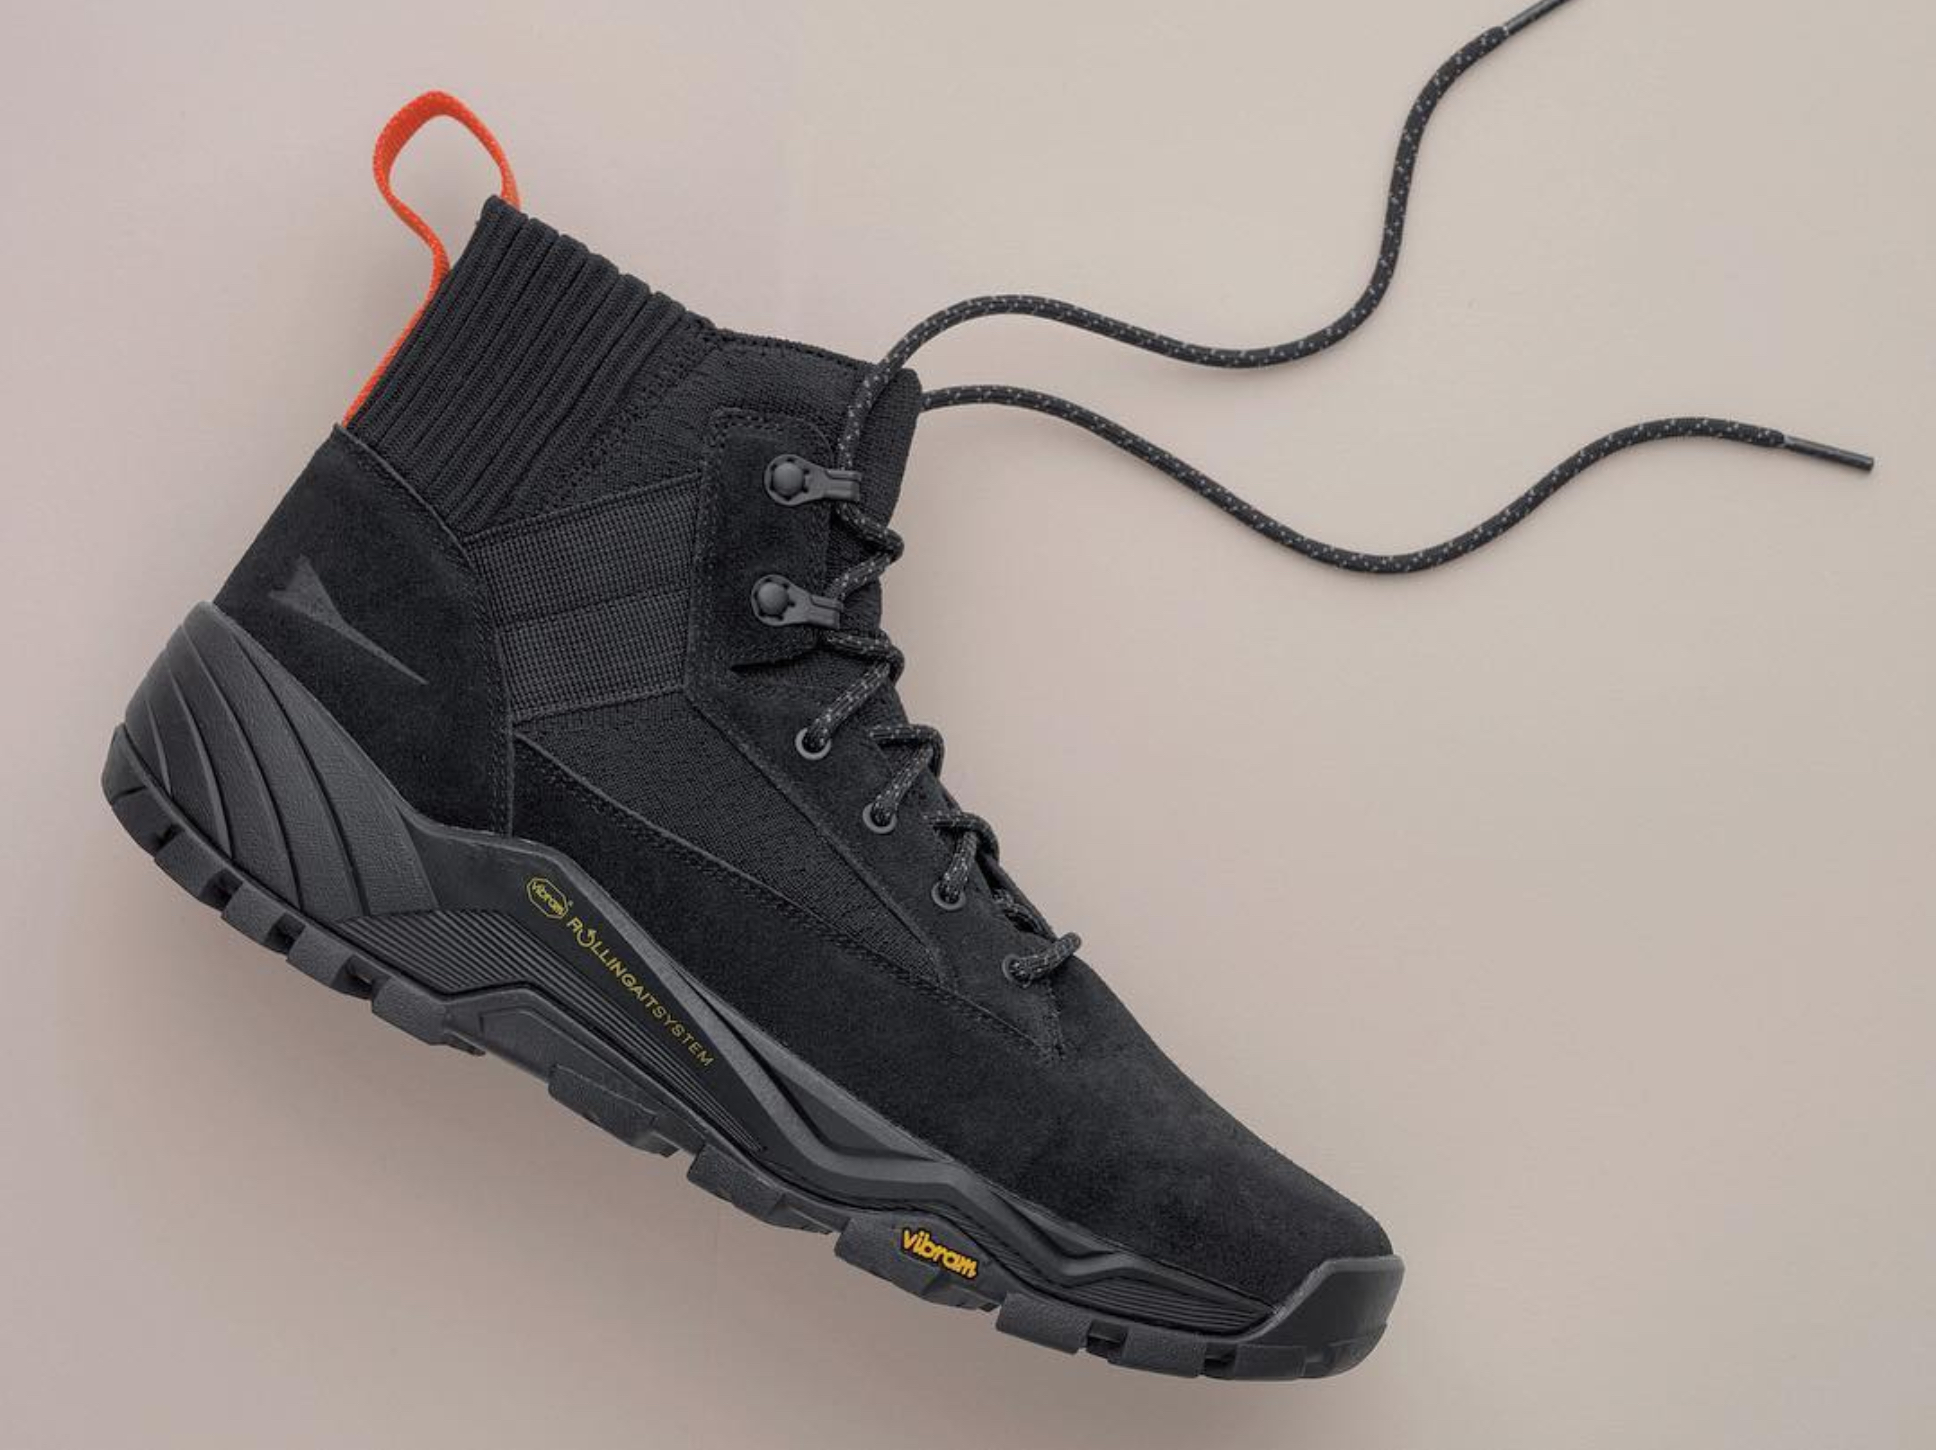 buy popular c2fbb 2ee13 The HALO x Brandblack Bladerunner Boot is Coming Soon, to Europe ...